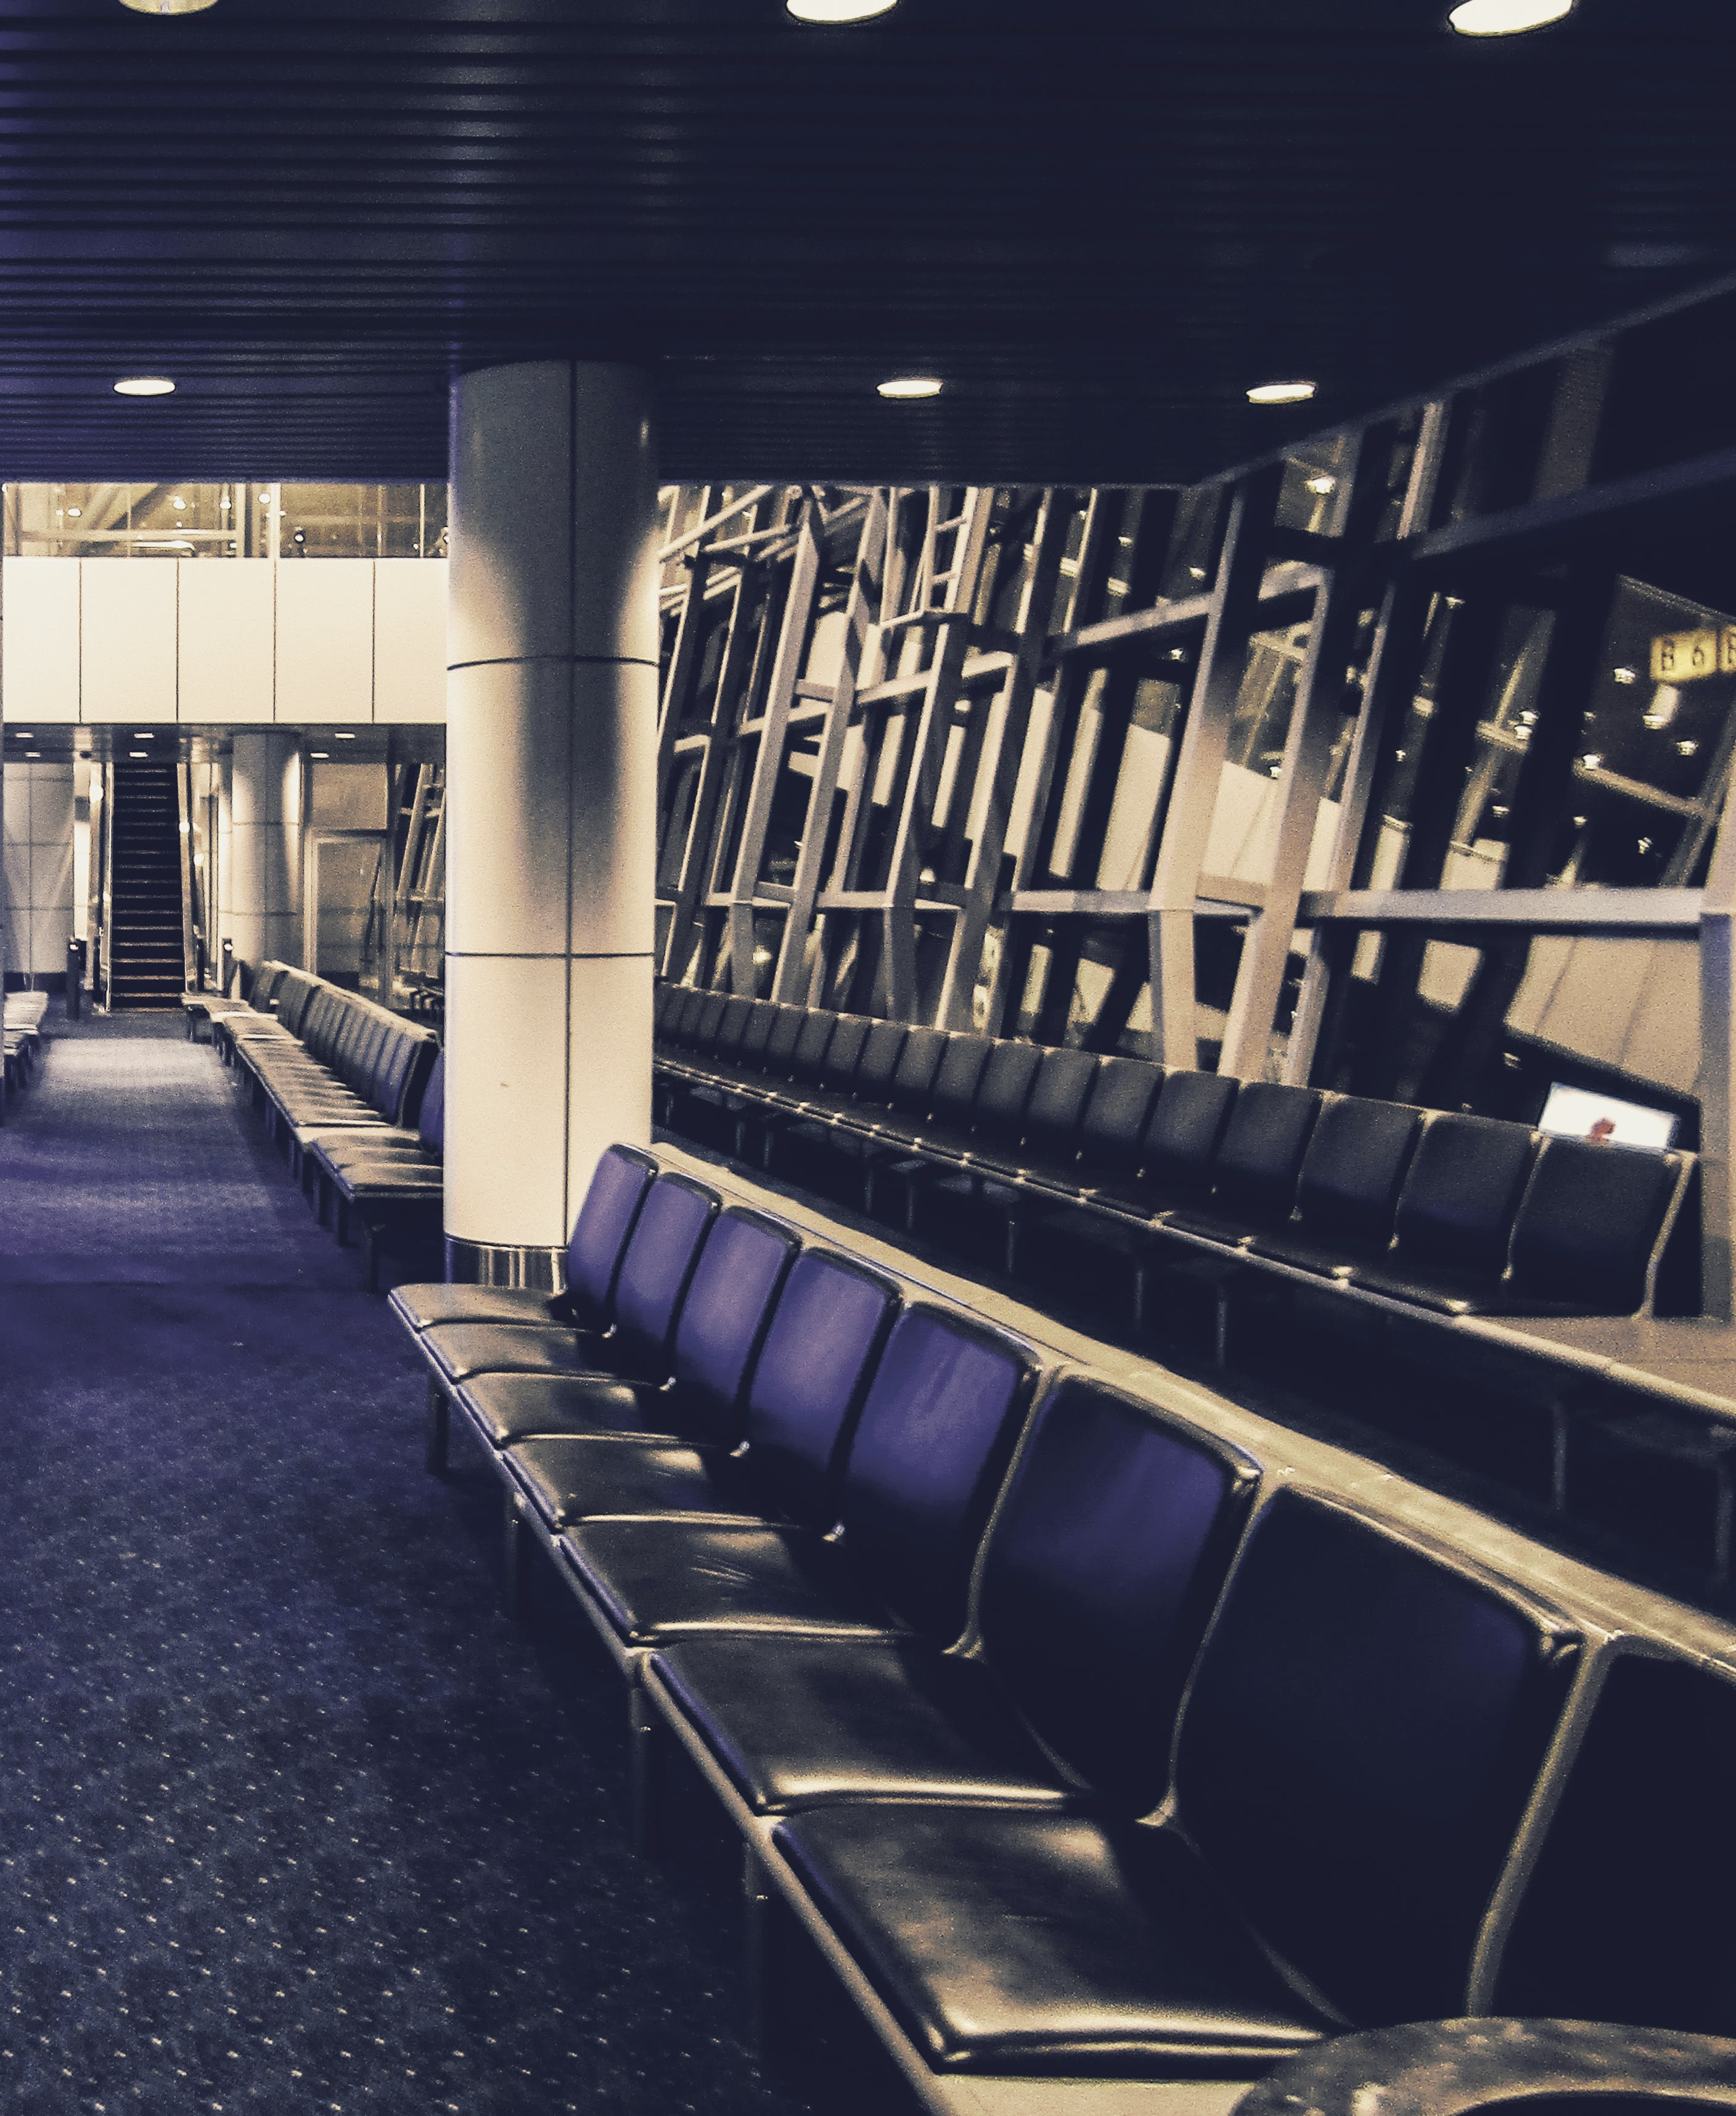 Free stock photo of airport, benches, waiting area